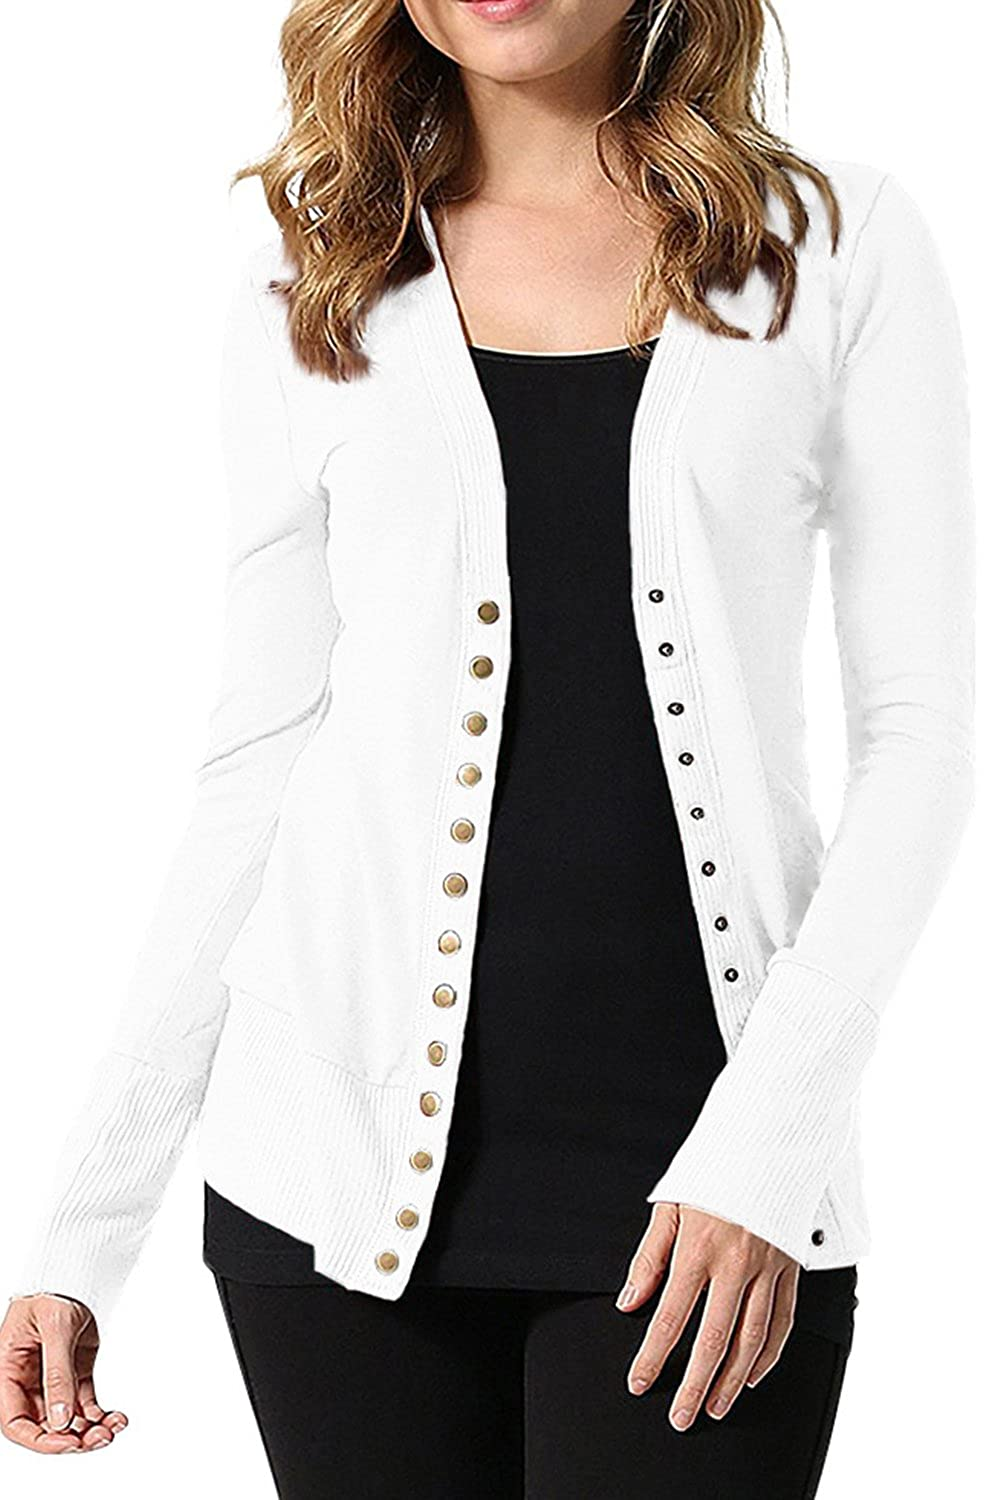 Jumojufol Women's Elegant Single Breasted Fit Slim Jacket Cardigan CATNHMQ14